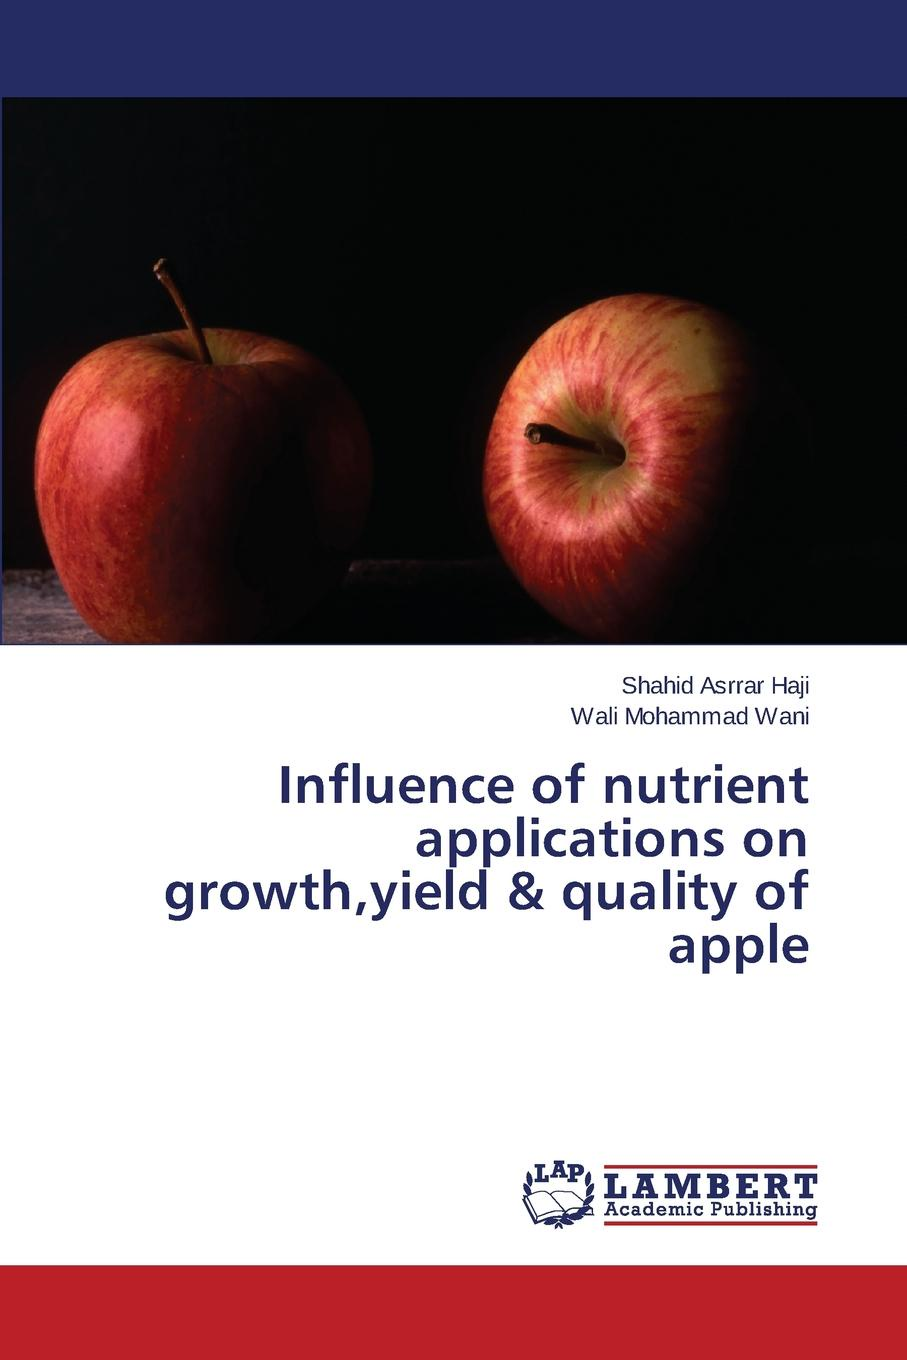 Haji Shahid Asrrar, Wani Wali Mohammad Influence of nutrient applications on growth,yield . quality of apple towards improved compositions application of peer editing